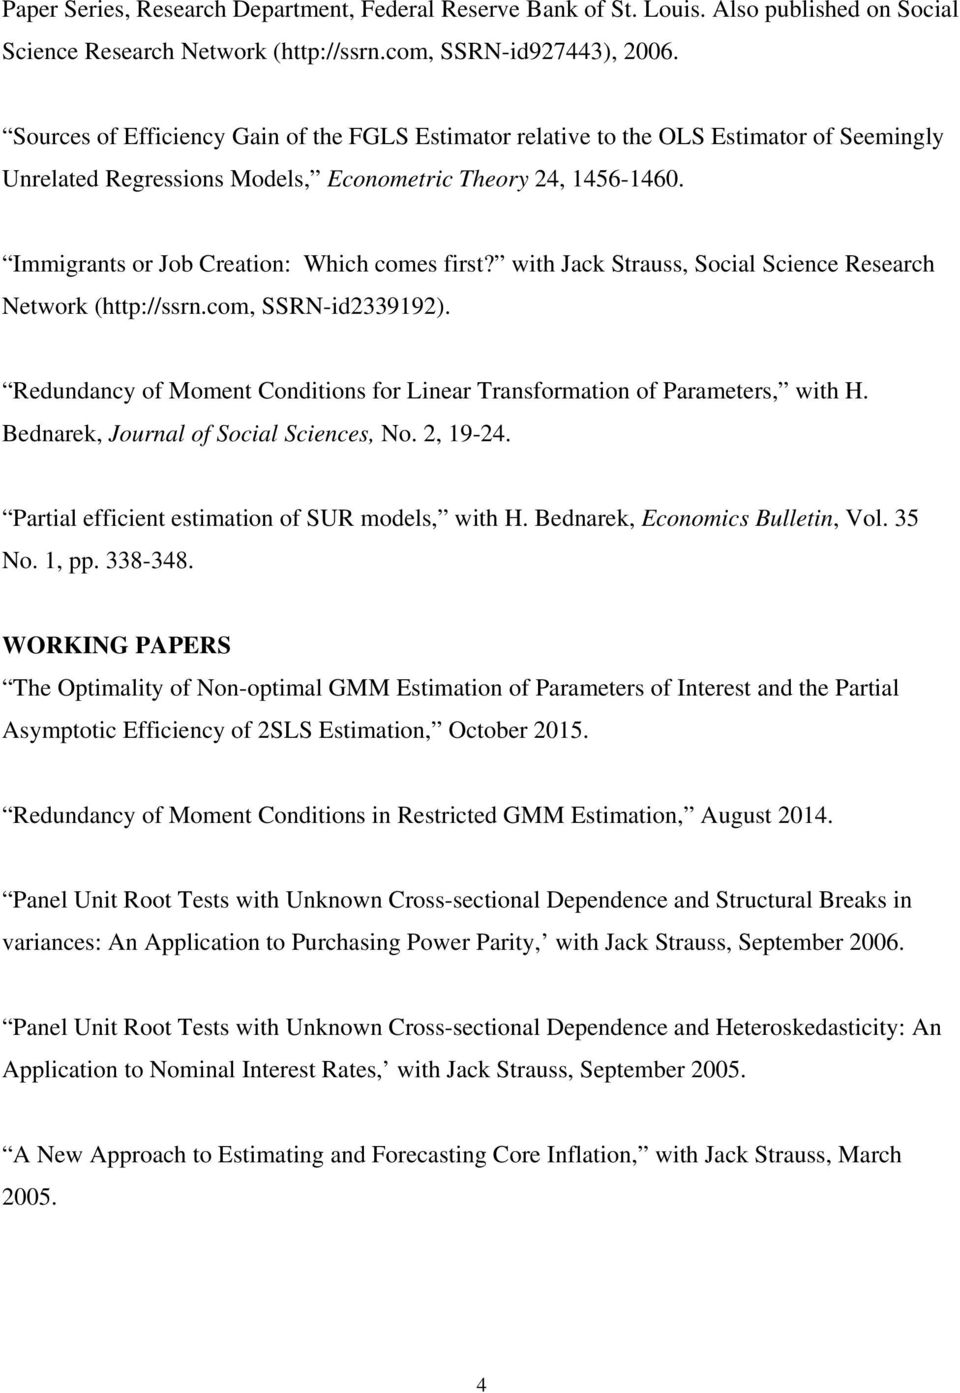 Immigrants or Job Creation: Which comes first? with Jack Strauss, Social Science Research Network (http://ssrn.com, SSRN-id2339192).